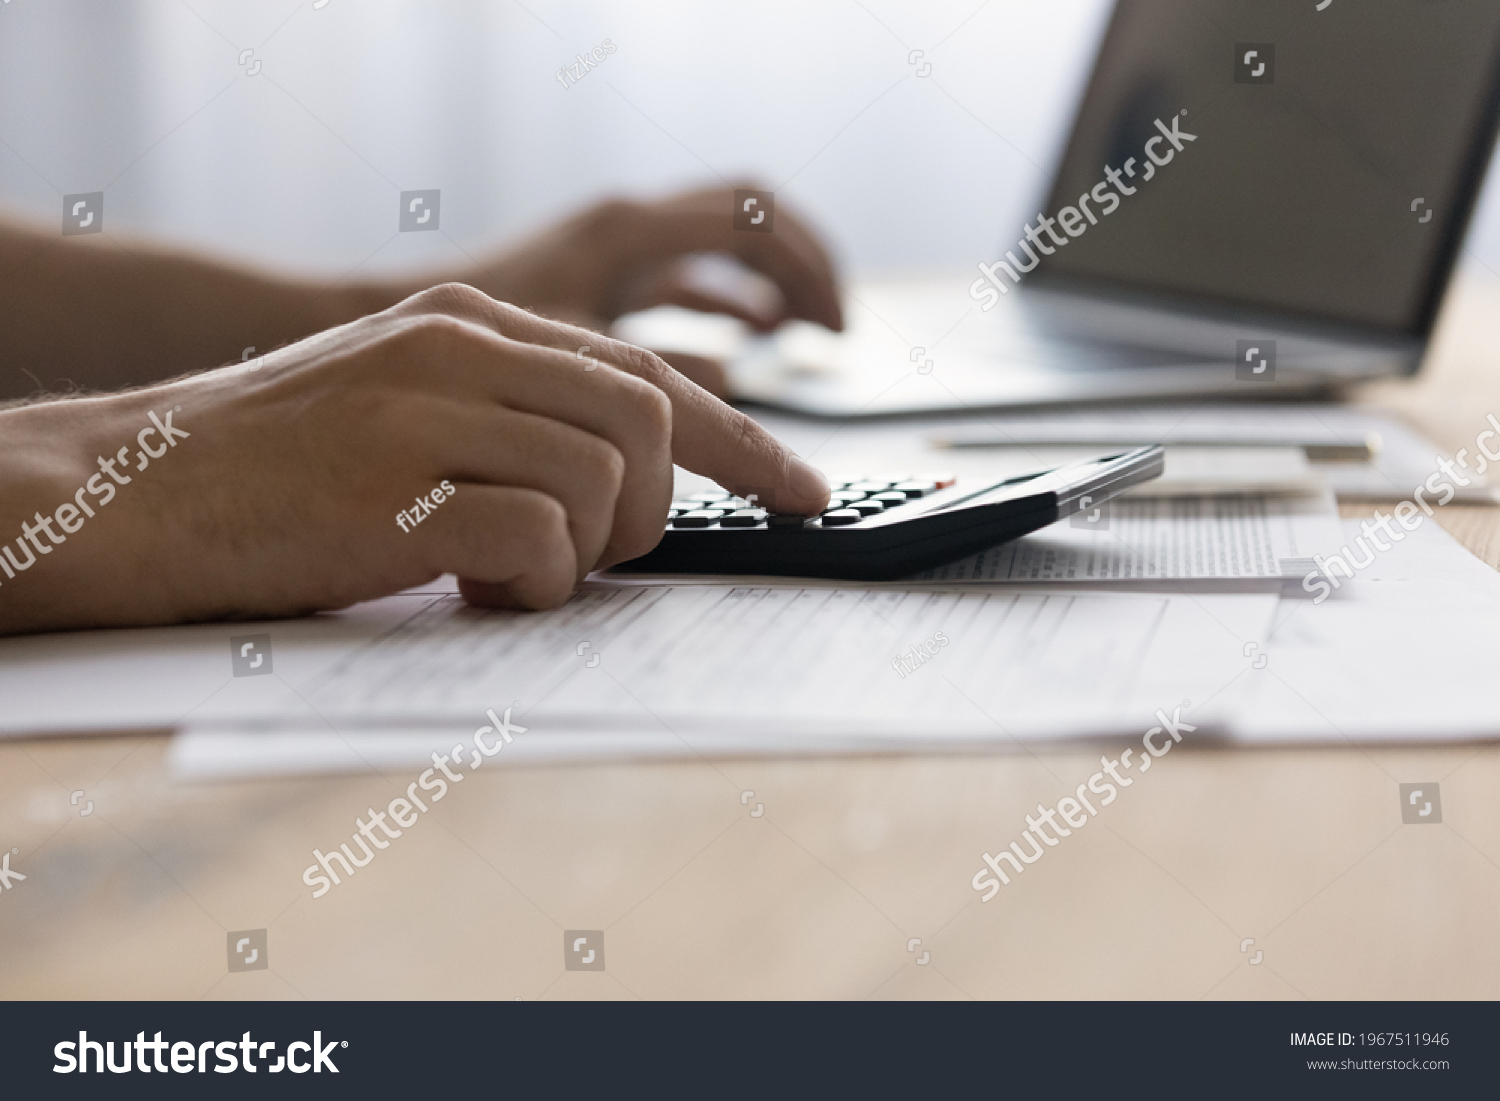 Close up man laptop and calculator, managing finances or planning budget, businessman calculating corporate bills, expenses, browsing online banking service, sitting at table with financial documents #1967511946